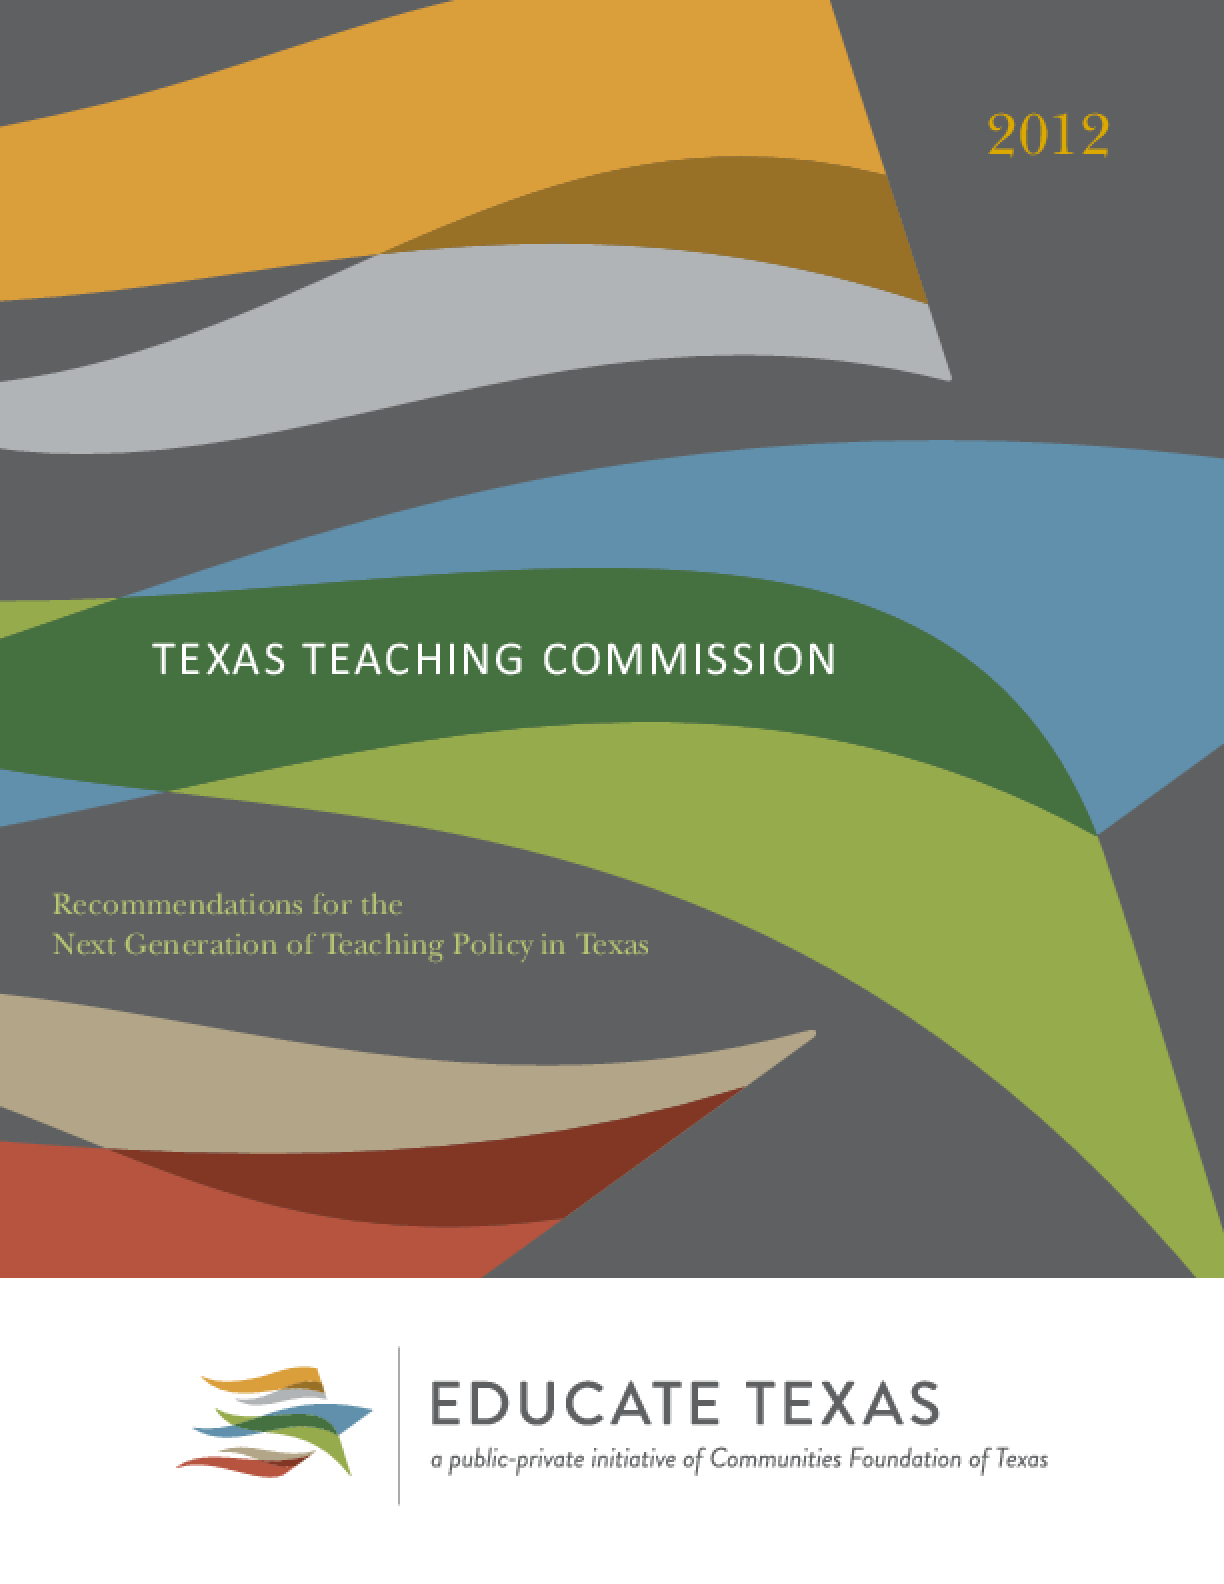 Texas Teaching Commission: Recommendations for the Next Generation of Teaching Policy in Texas